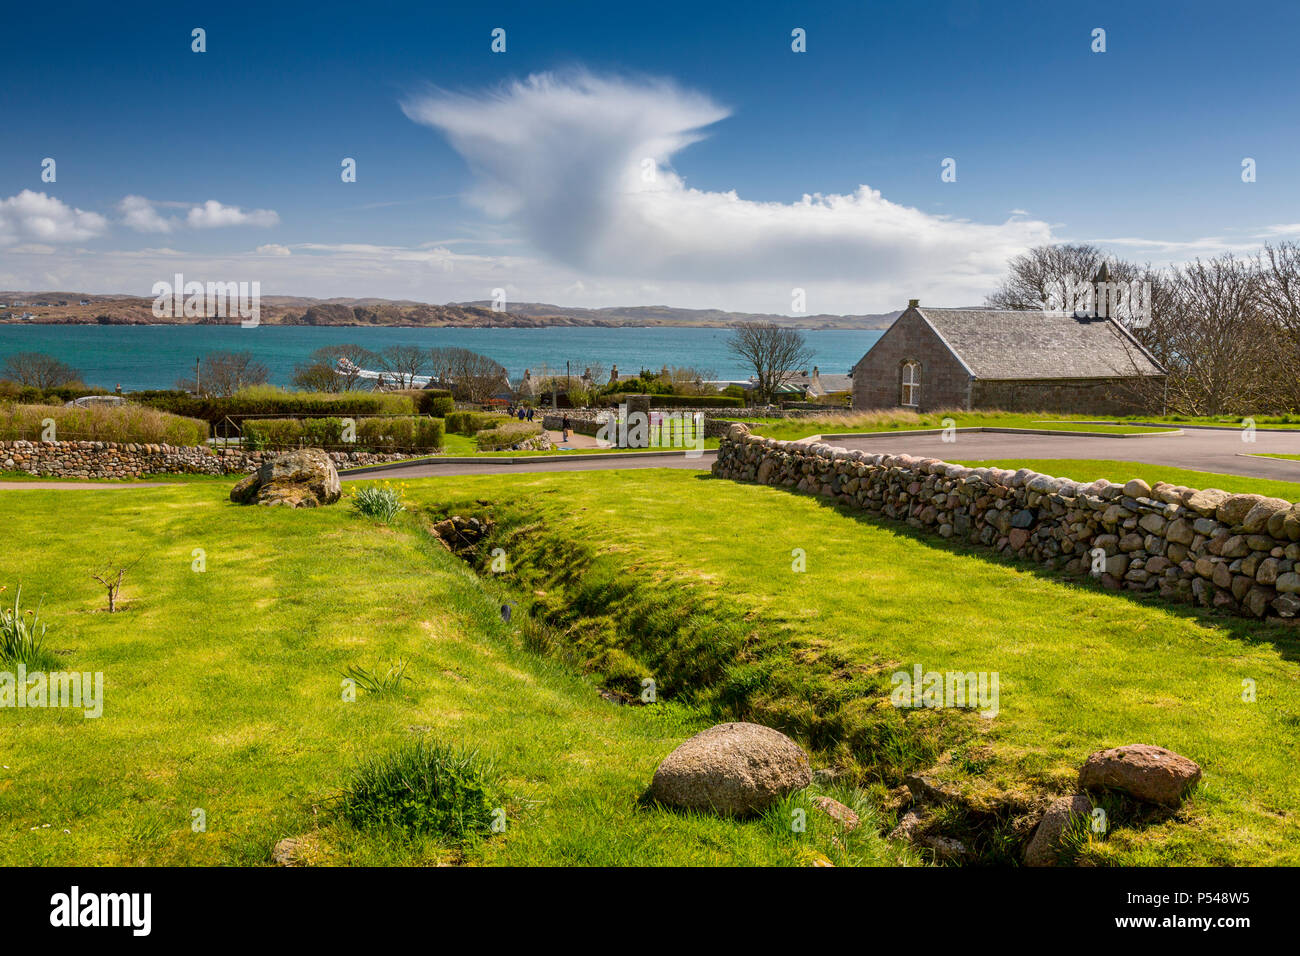 Threatening cumulonimbus clouds over the island of Mull viewed from the Hebridean island of Iona, Argyll and Bute, Scotland, UK - Stock Image